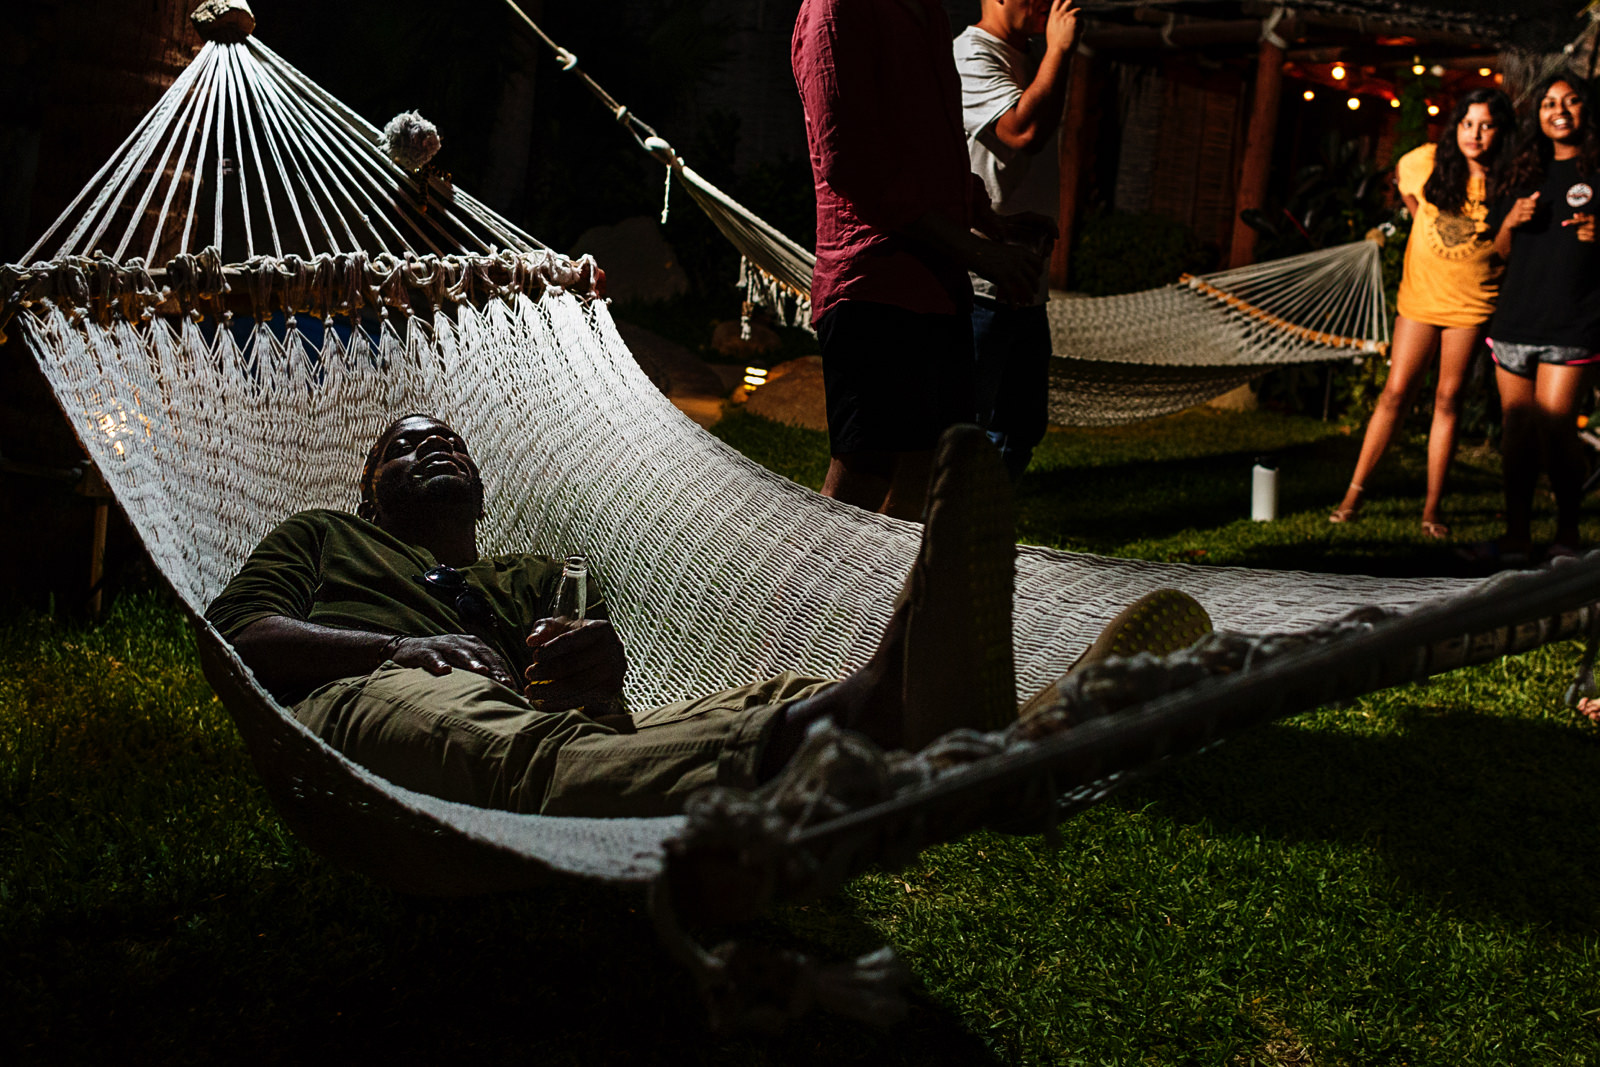 A man is falling sleep on a hammock at the party on the grass area